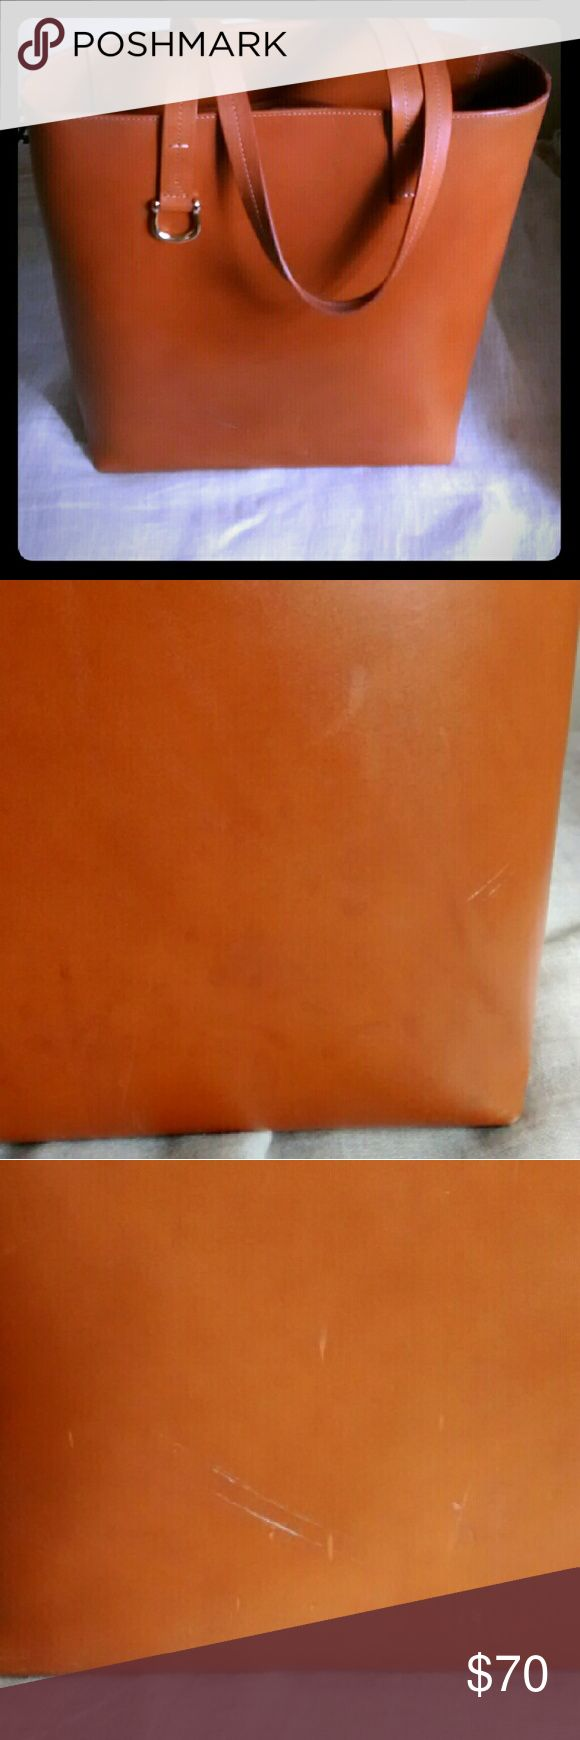 & other stories leather tote Large vegetable tanned leather tote. One interior pocket. Very structured. Several scratches, see pics. These can probably be fixed, but price reflects the imperfections. Buckle detail on one side. & other stories Bags Totes